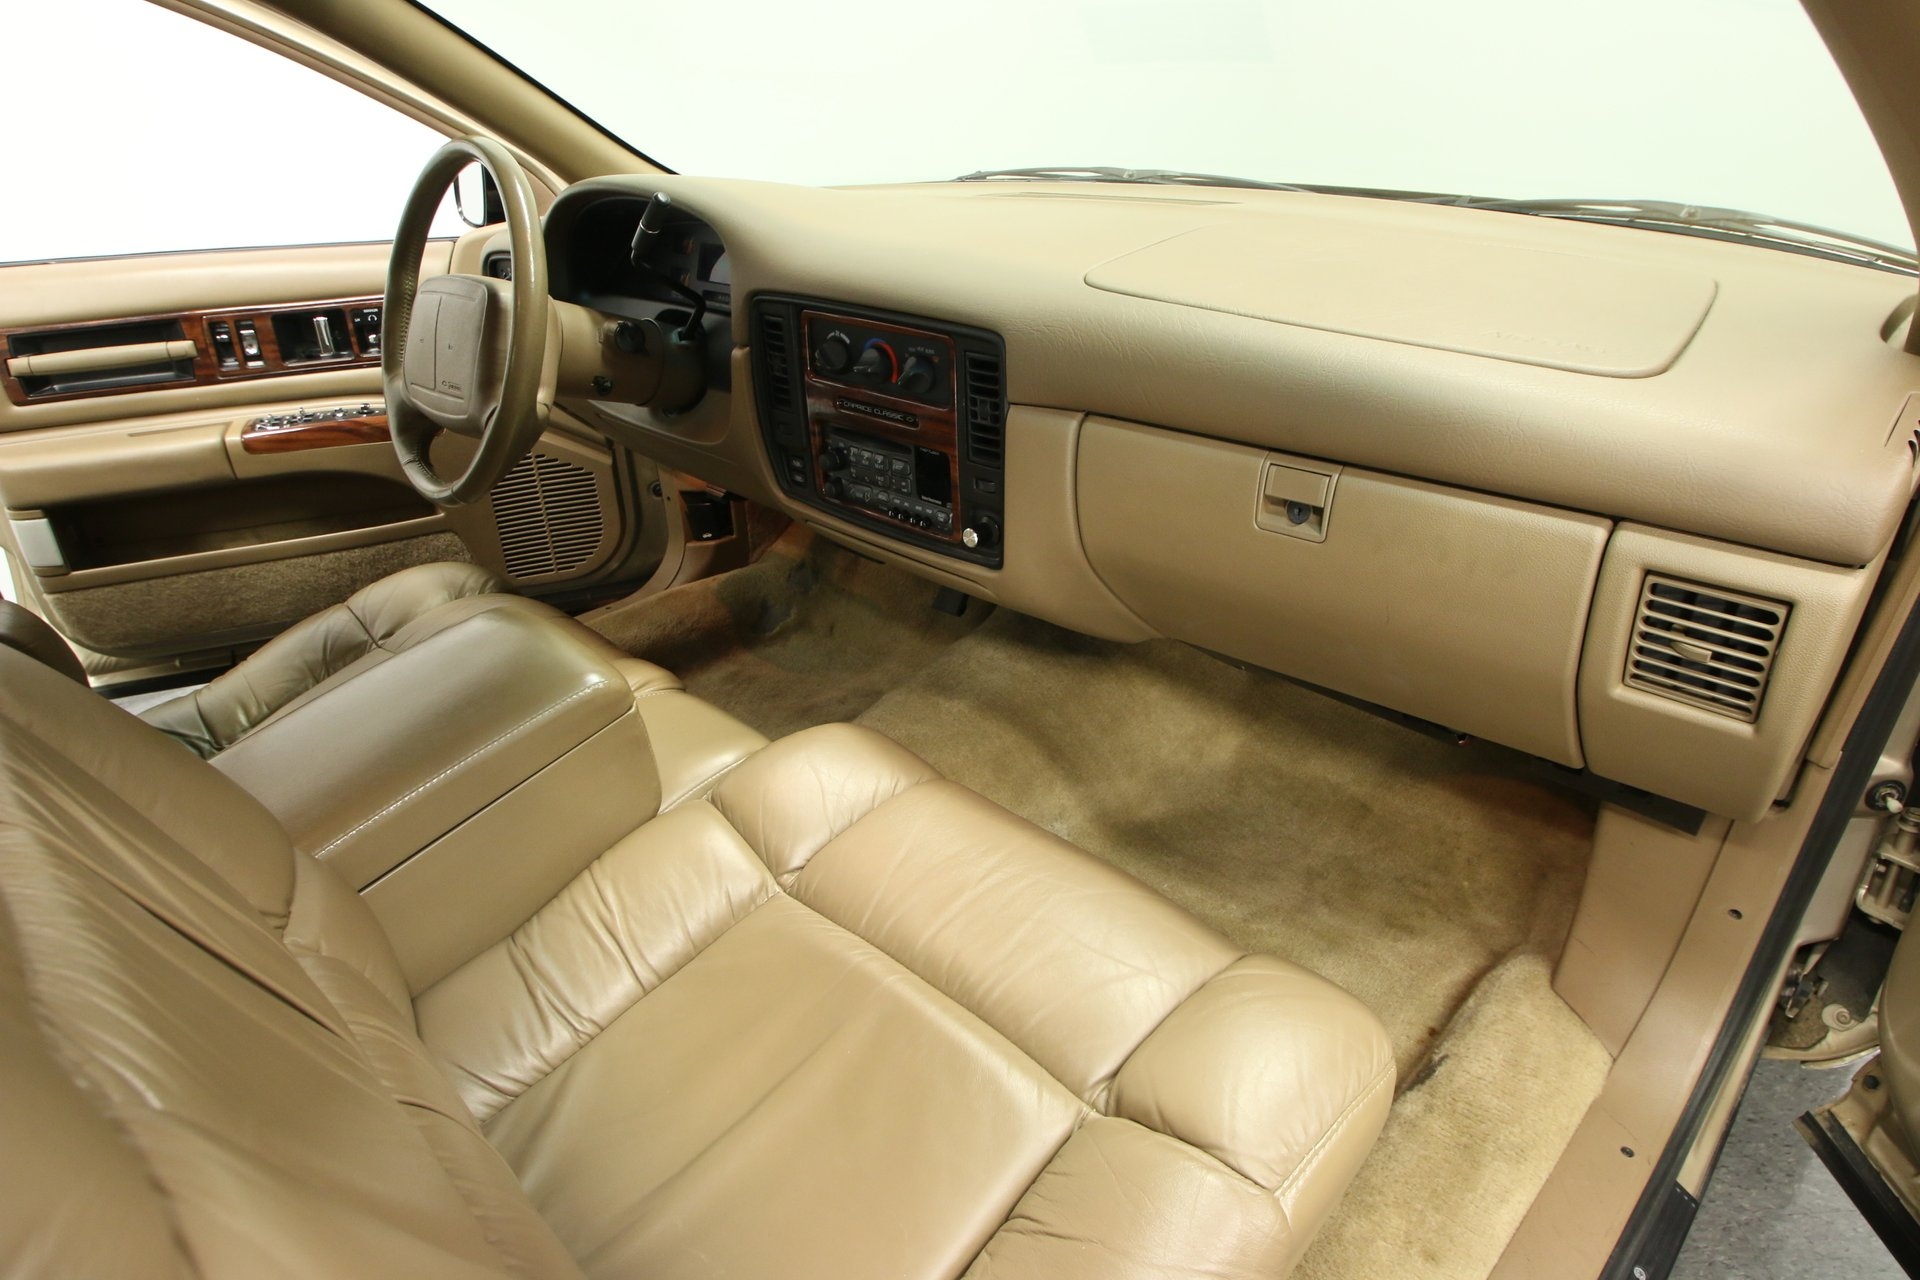 Superb 1996 Chevrolet Caprice Classic For Sale 48599 Mcg Gmtry Best Dining Table And Chair Ideas Images Gmtryco